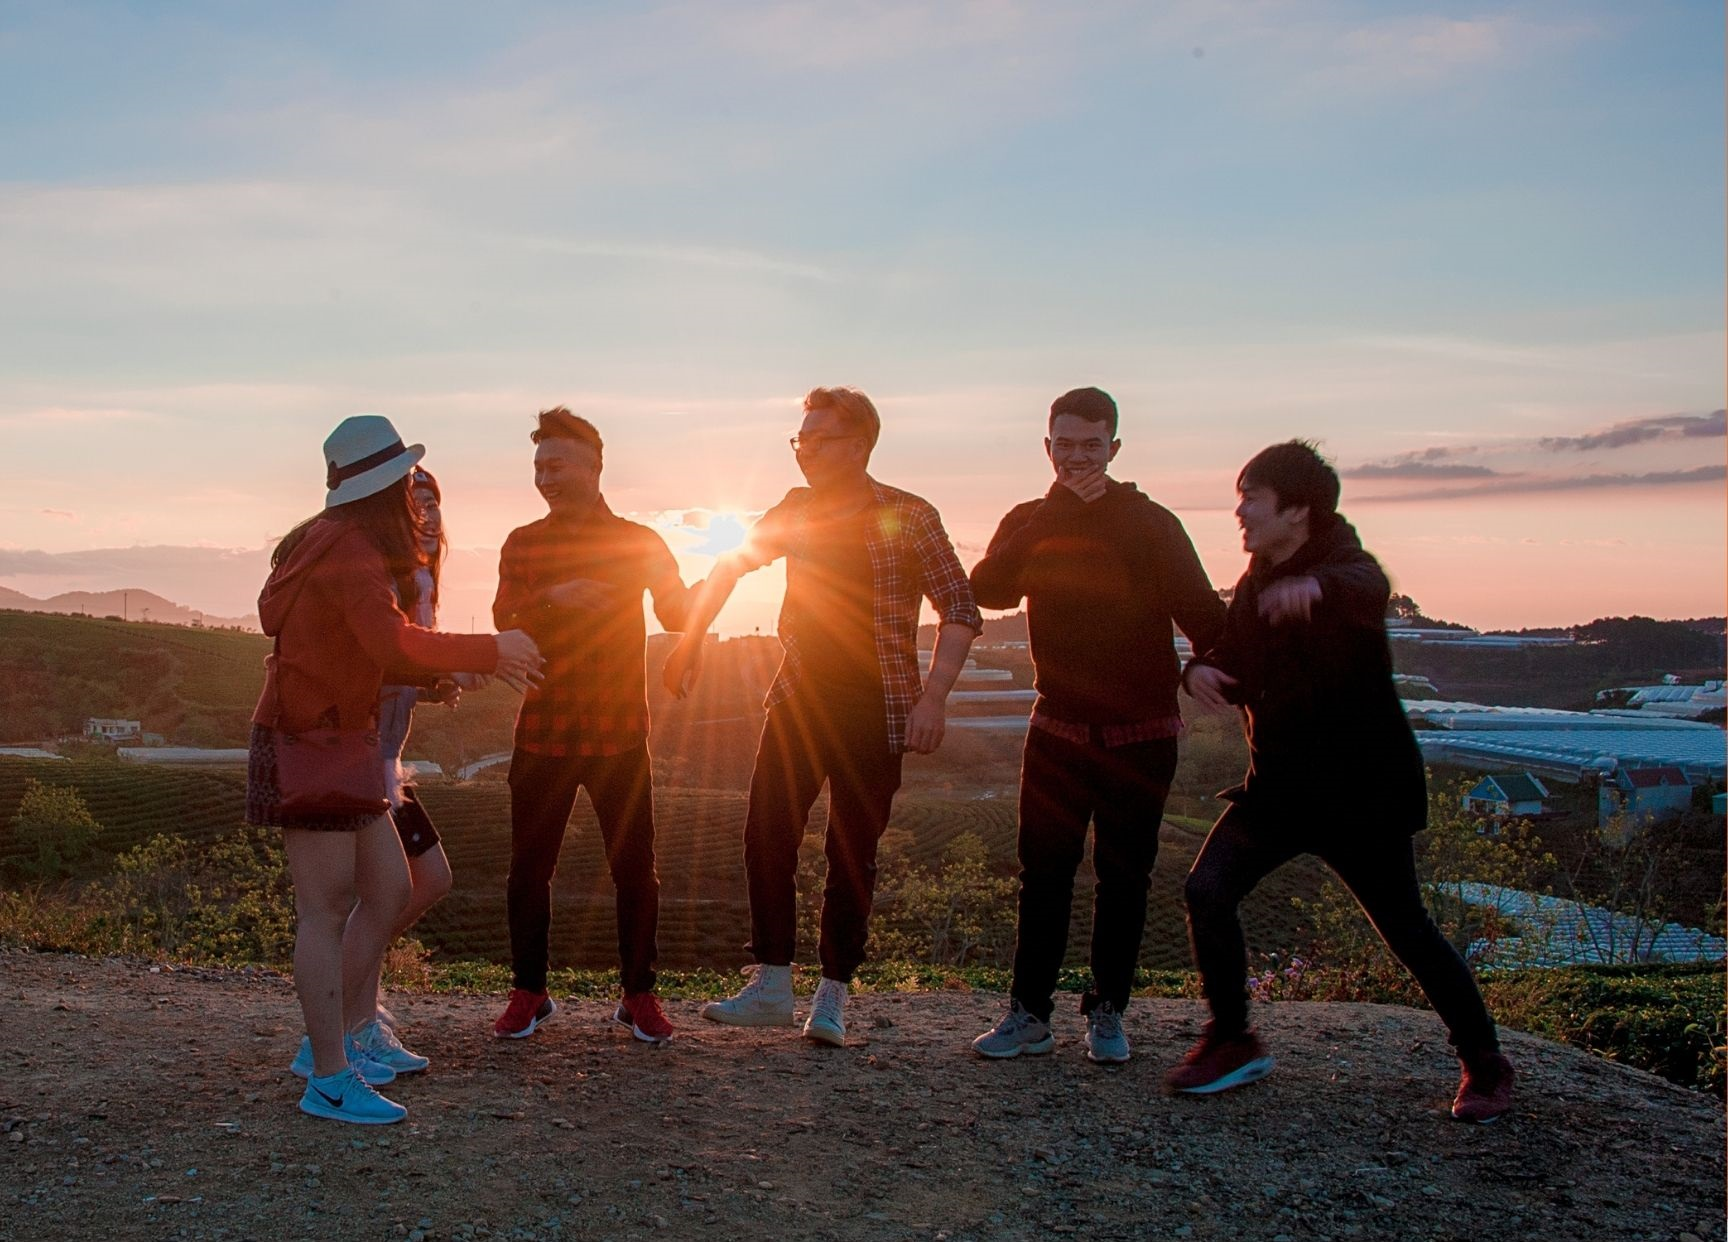 A group of teens at sunset